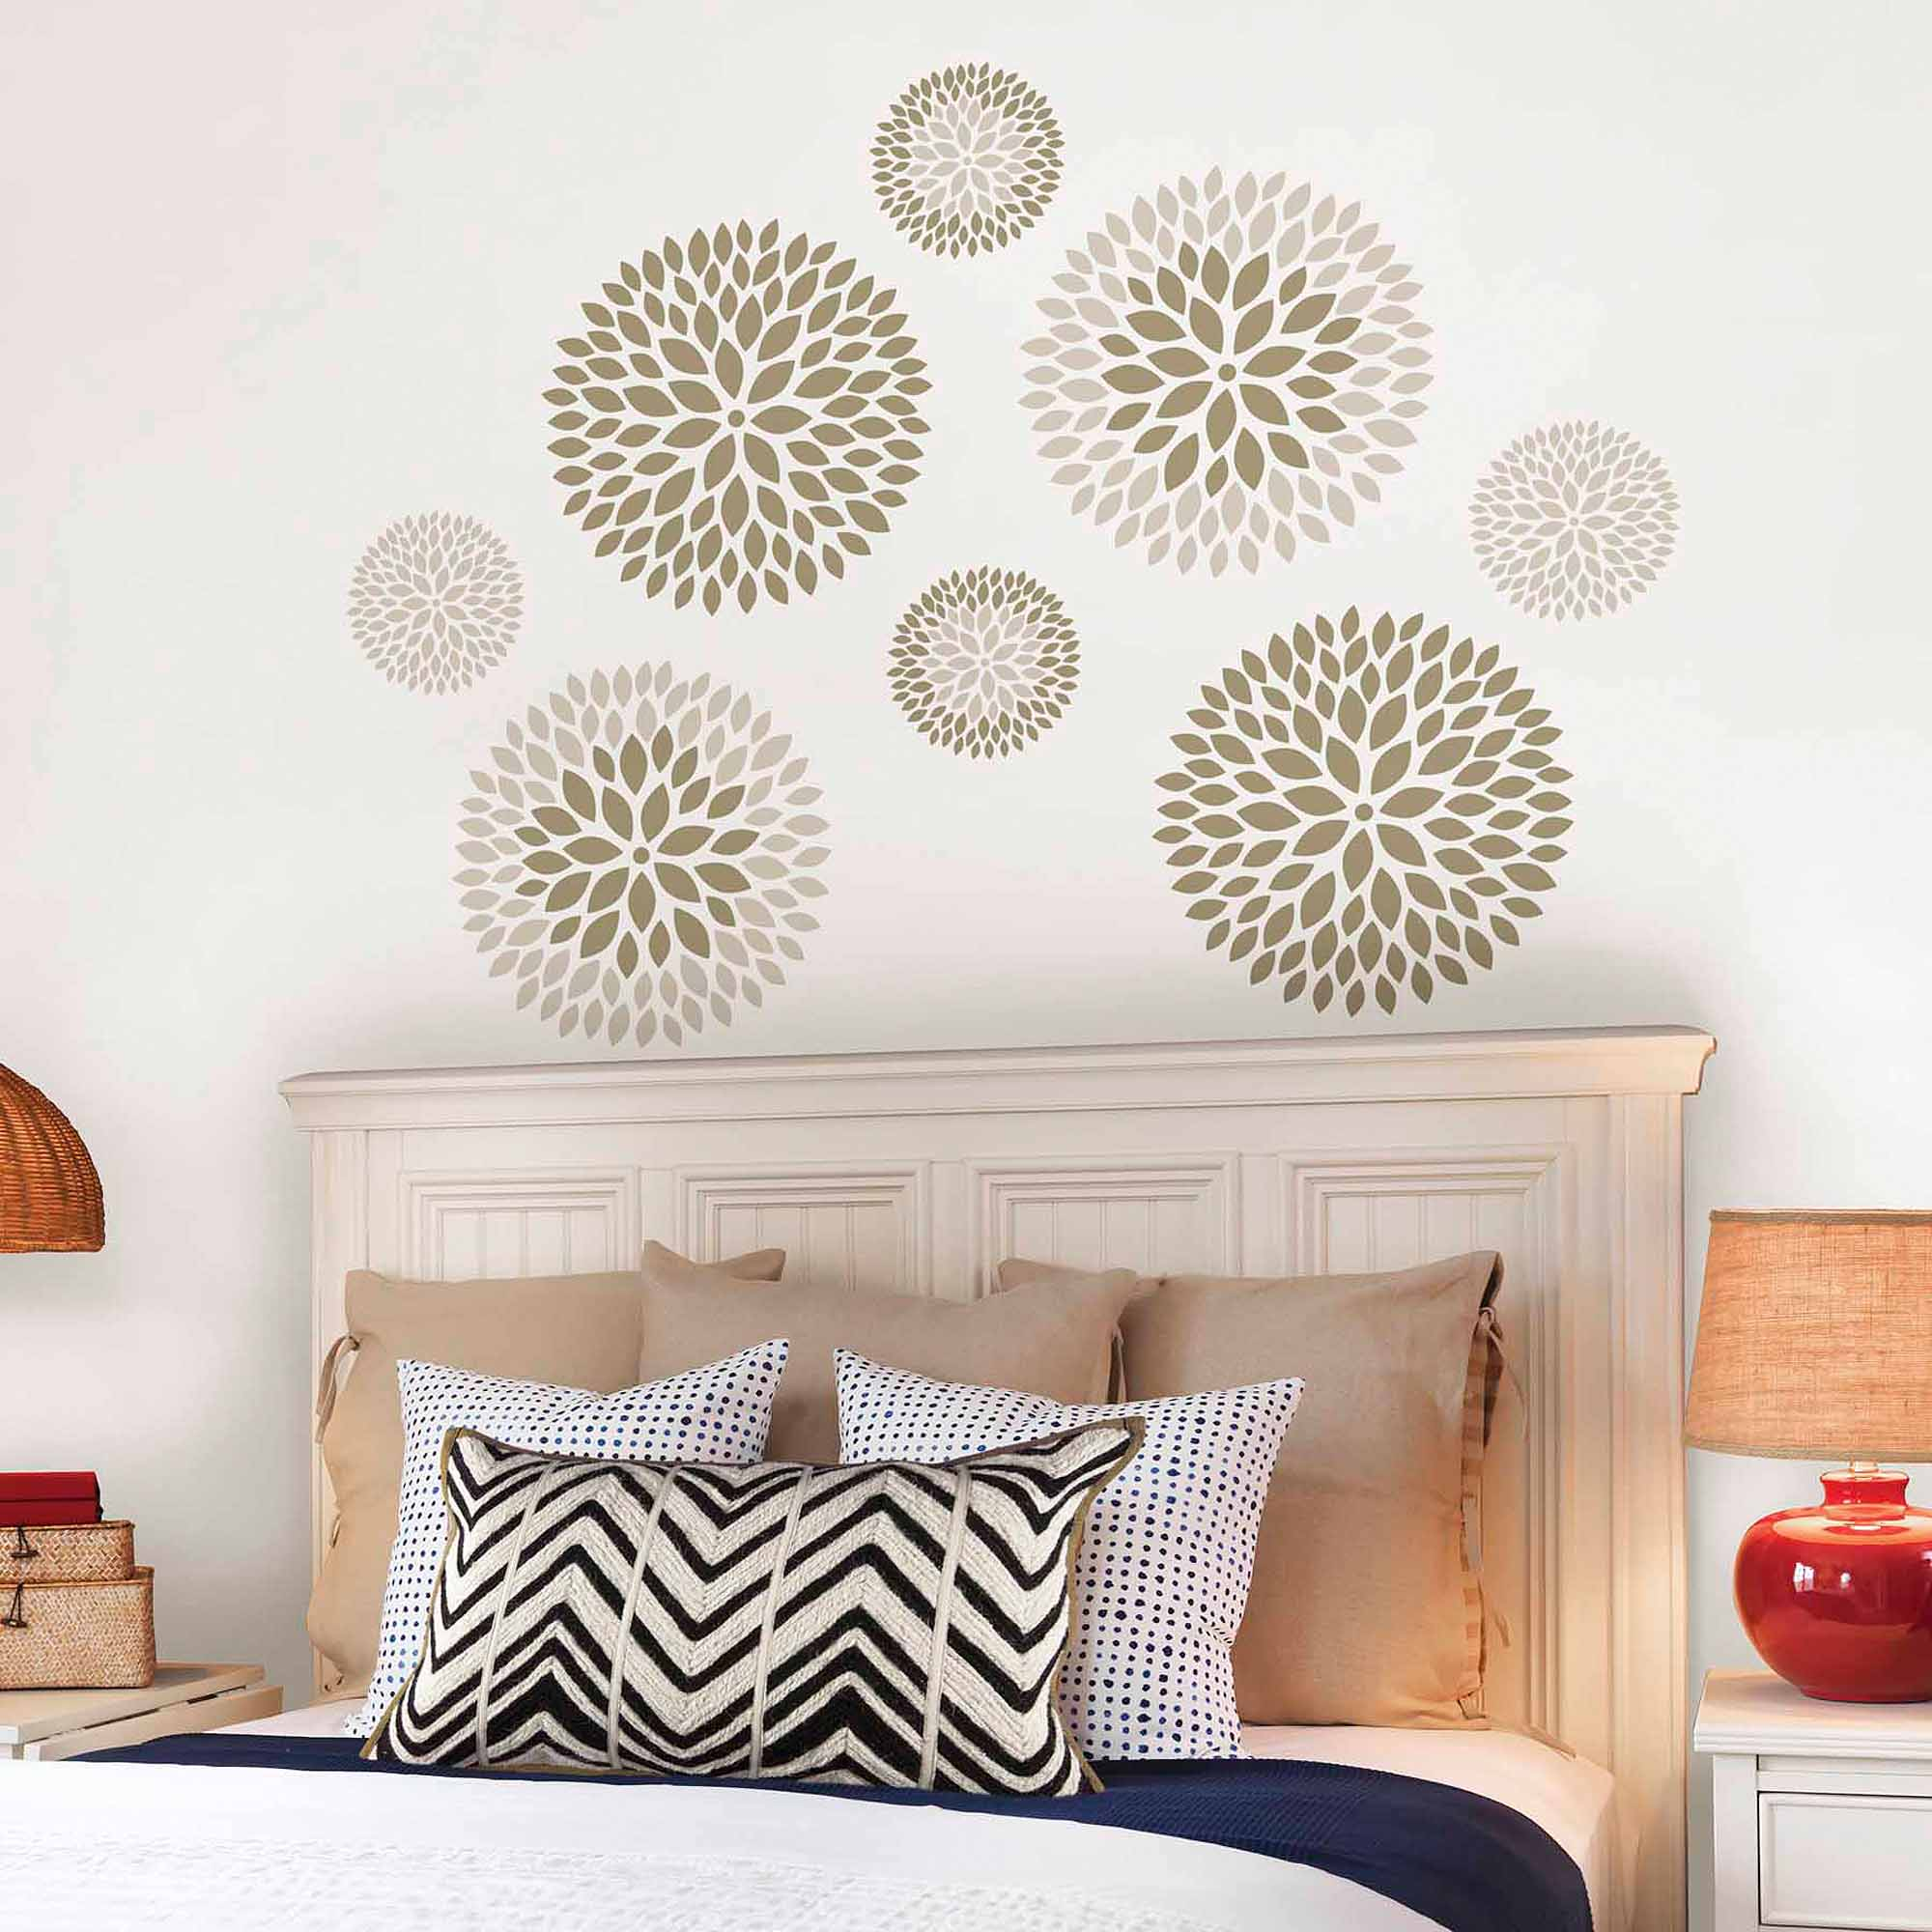 Captivating WallPops Chrysanthemum Wall Art Decals Kit   Walmart.com